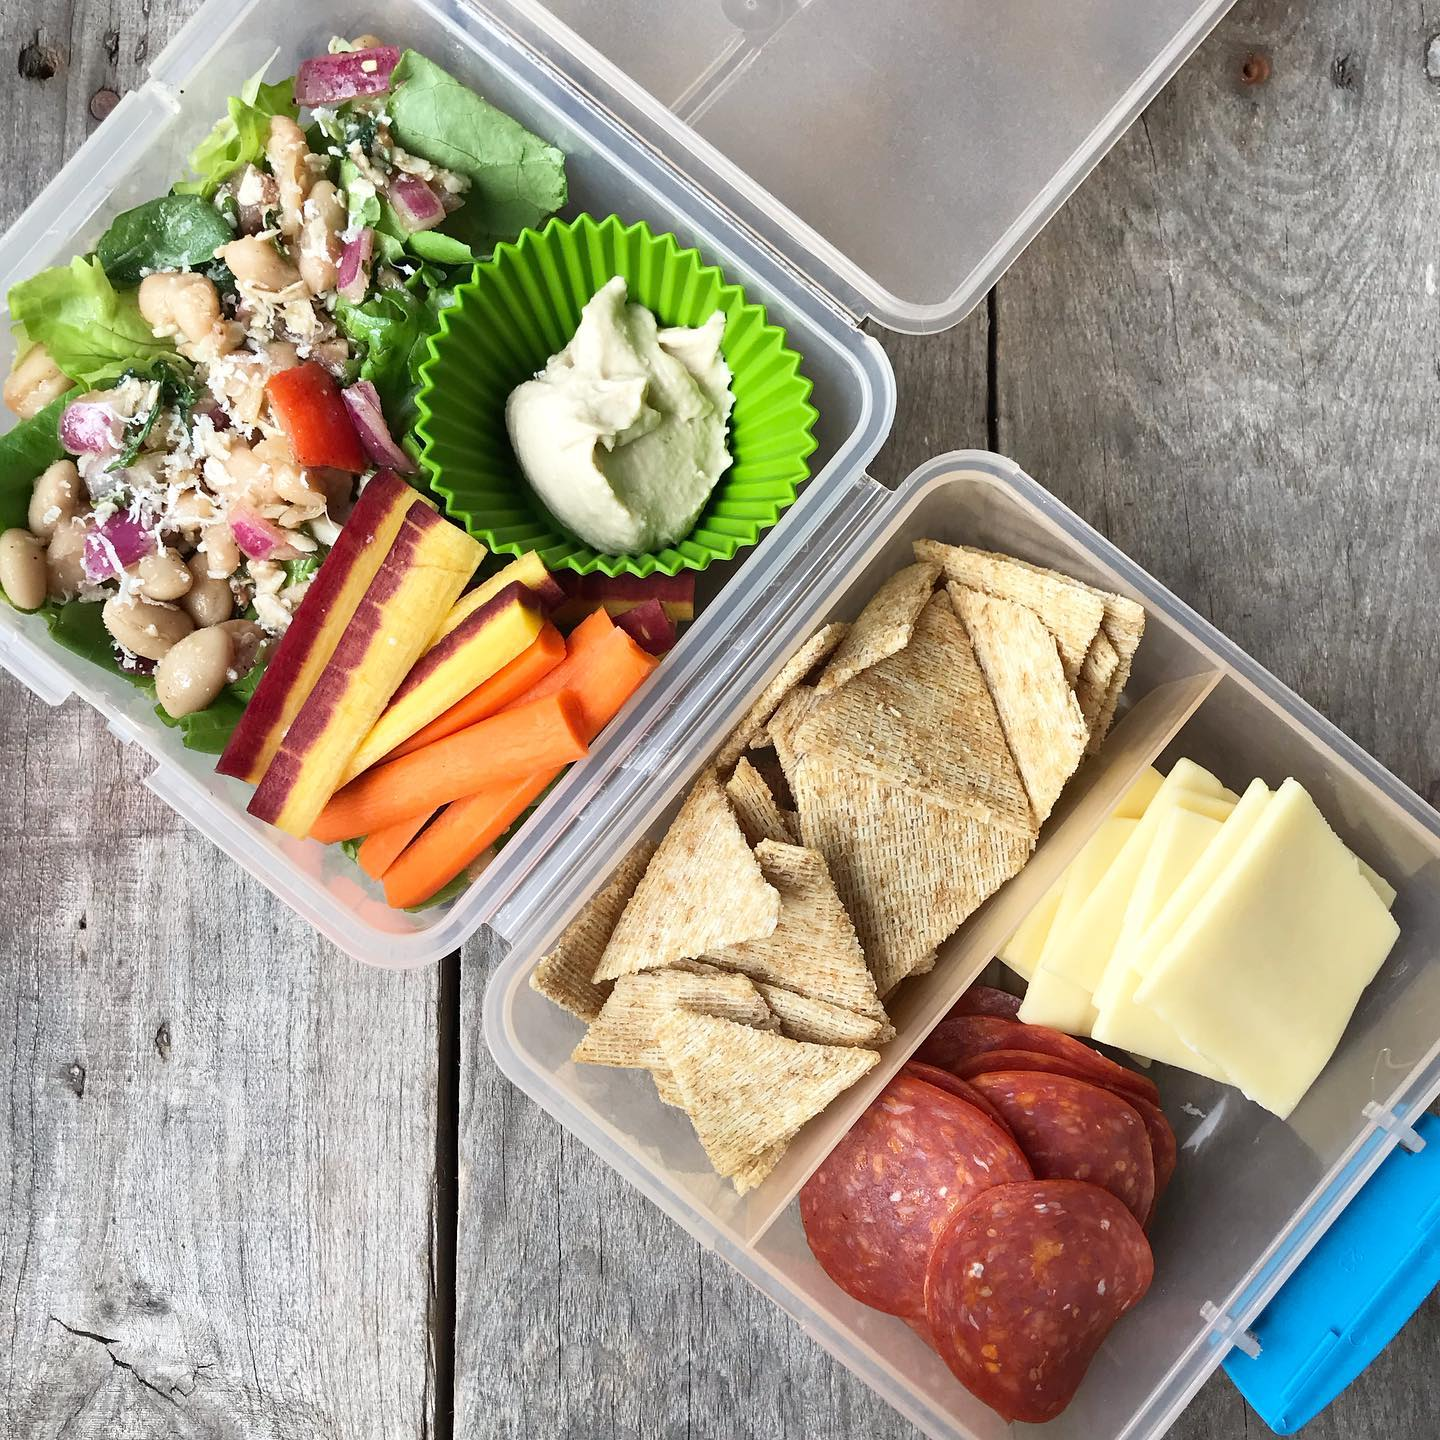 school lunch of crackers, cheese, white bean salad, carrots, and hummus from 100 days of real food